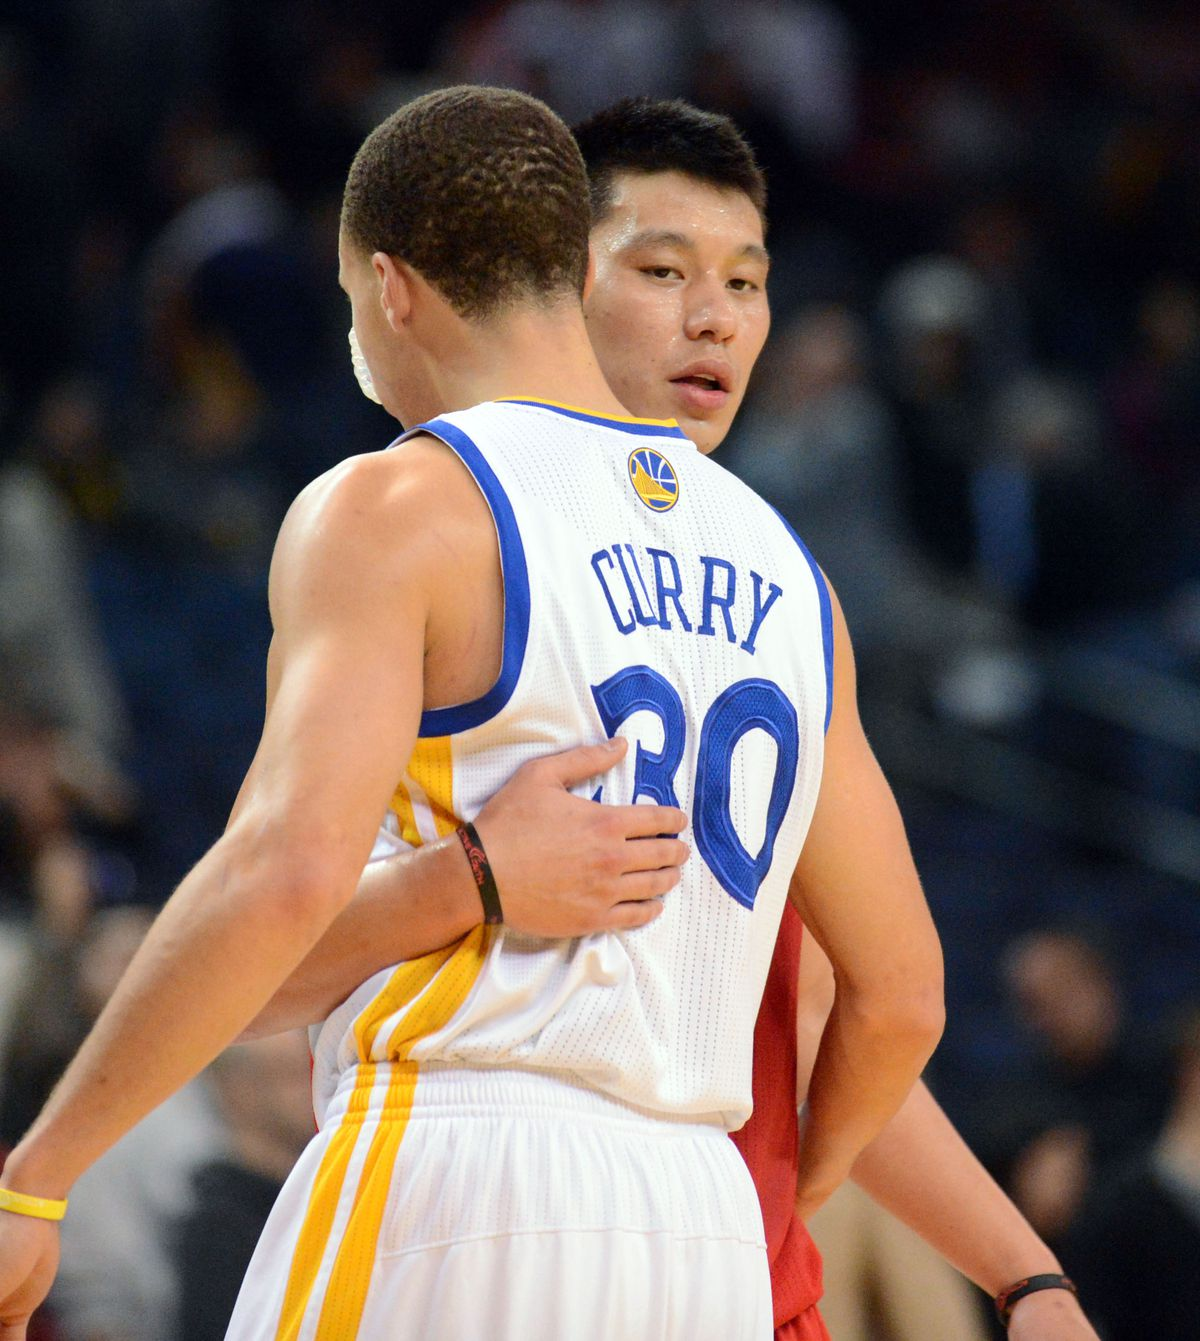 Golden State Warriors' Stephen Curry (30) left, and Houston Rockets' Jeremy Lin (7) hug after their basketball game held at Oracle Arena in Oakland, Calif., on Tuesday, Feb. 12, 2013. The Houston Rockets went on to win the game 116 to 107. (Doug Duran/Sta